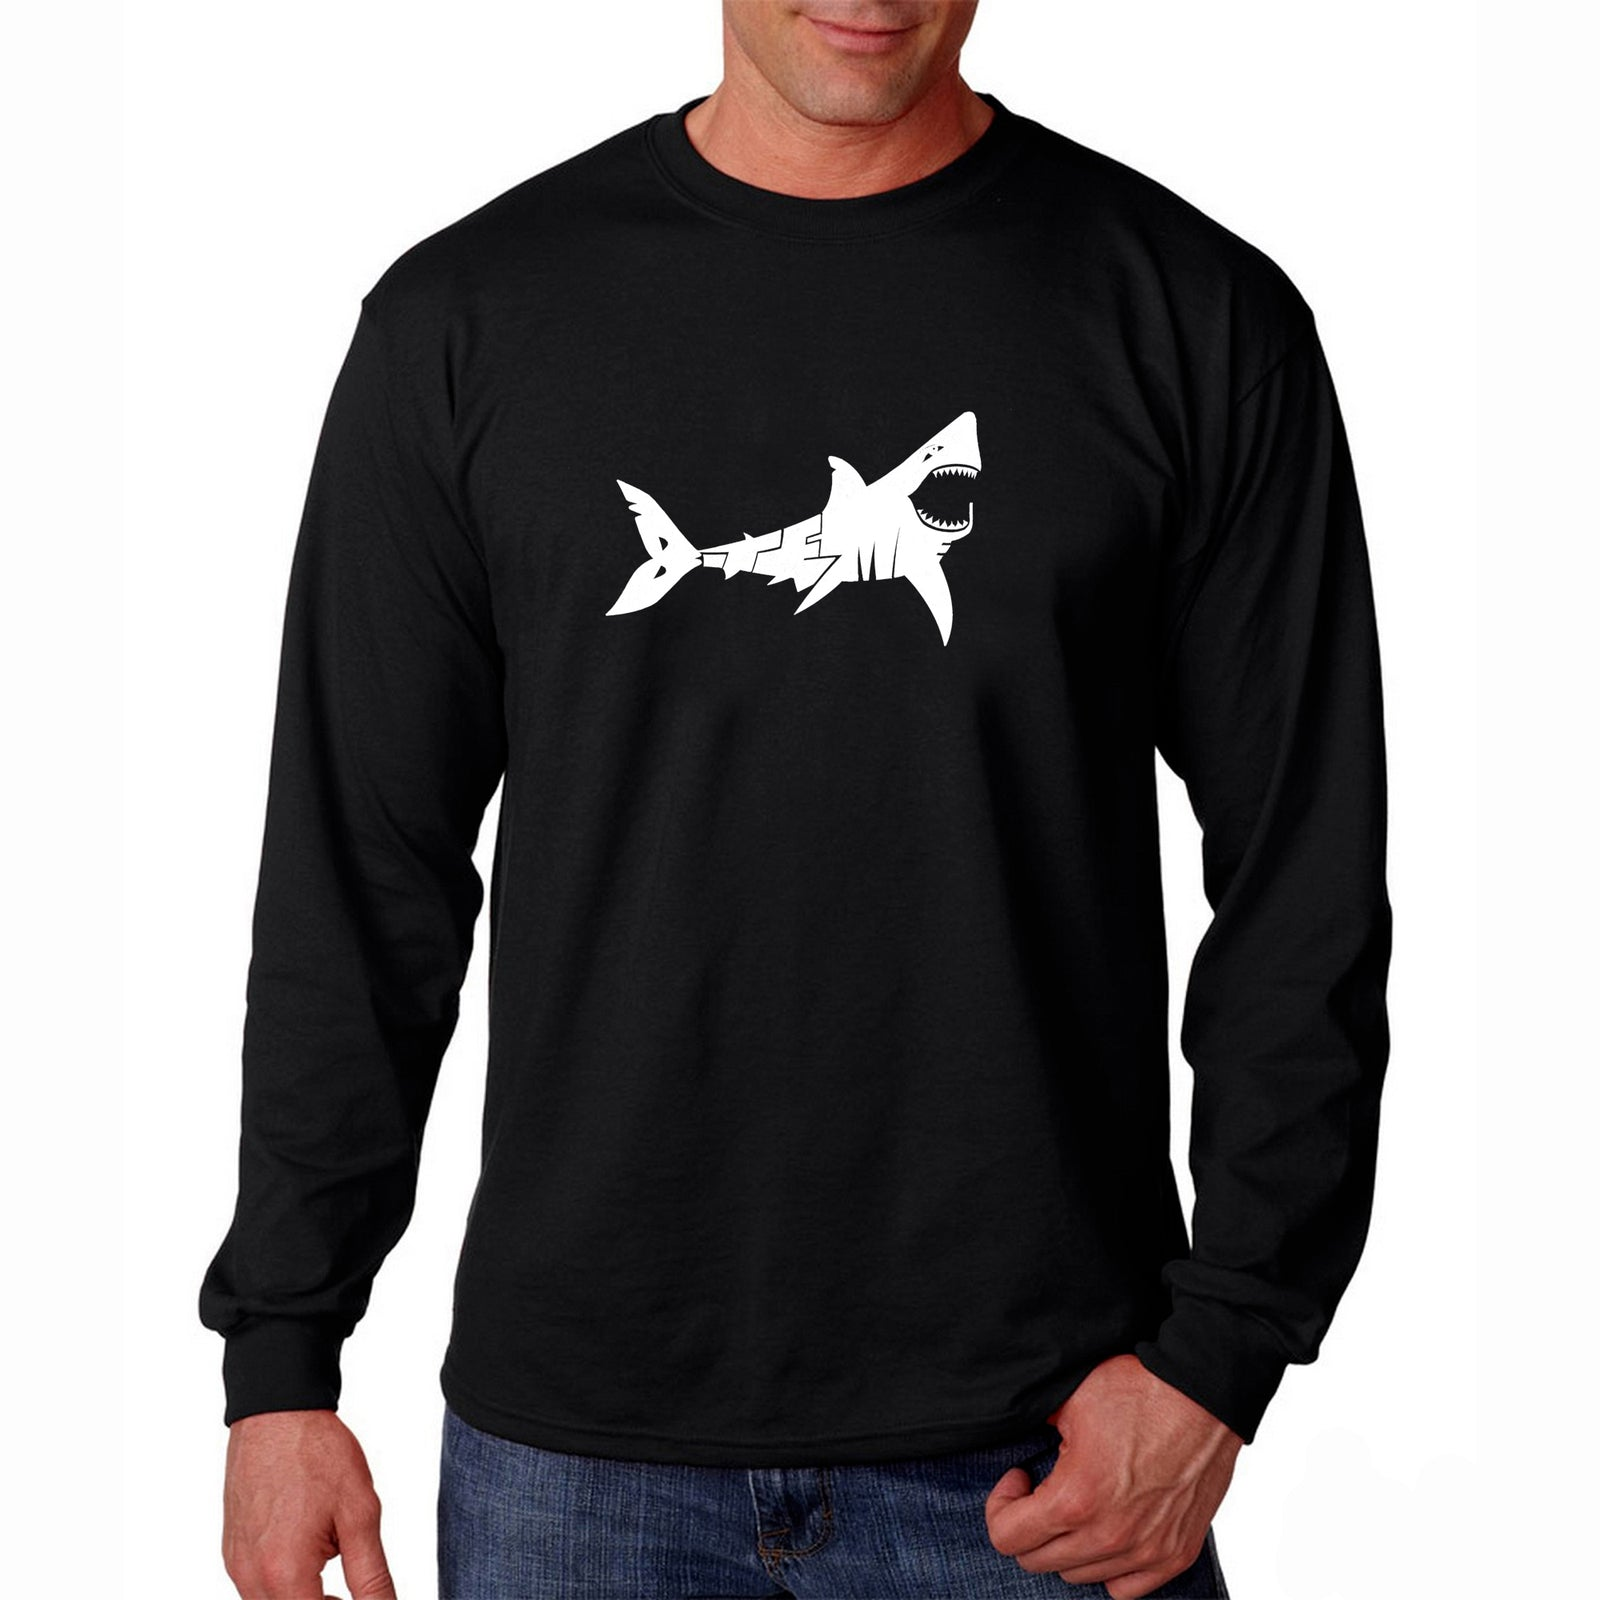 Men's Long Sleeve T-shirt - BITE ME